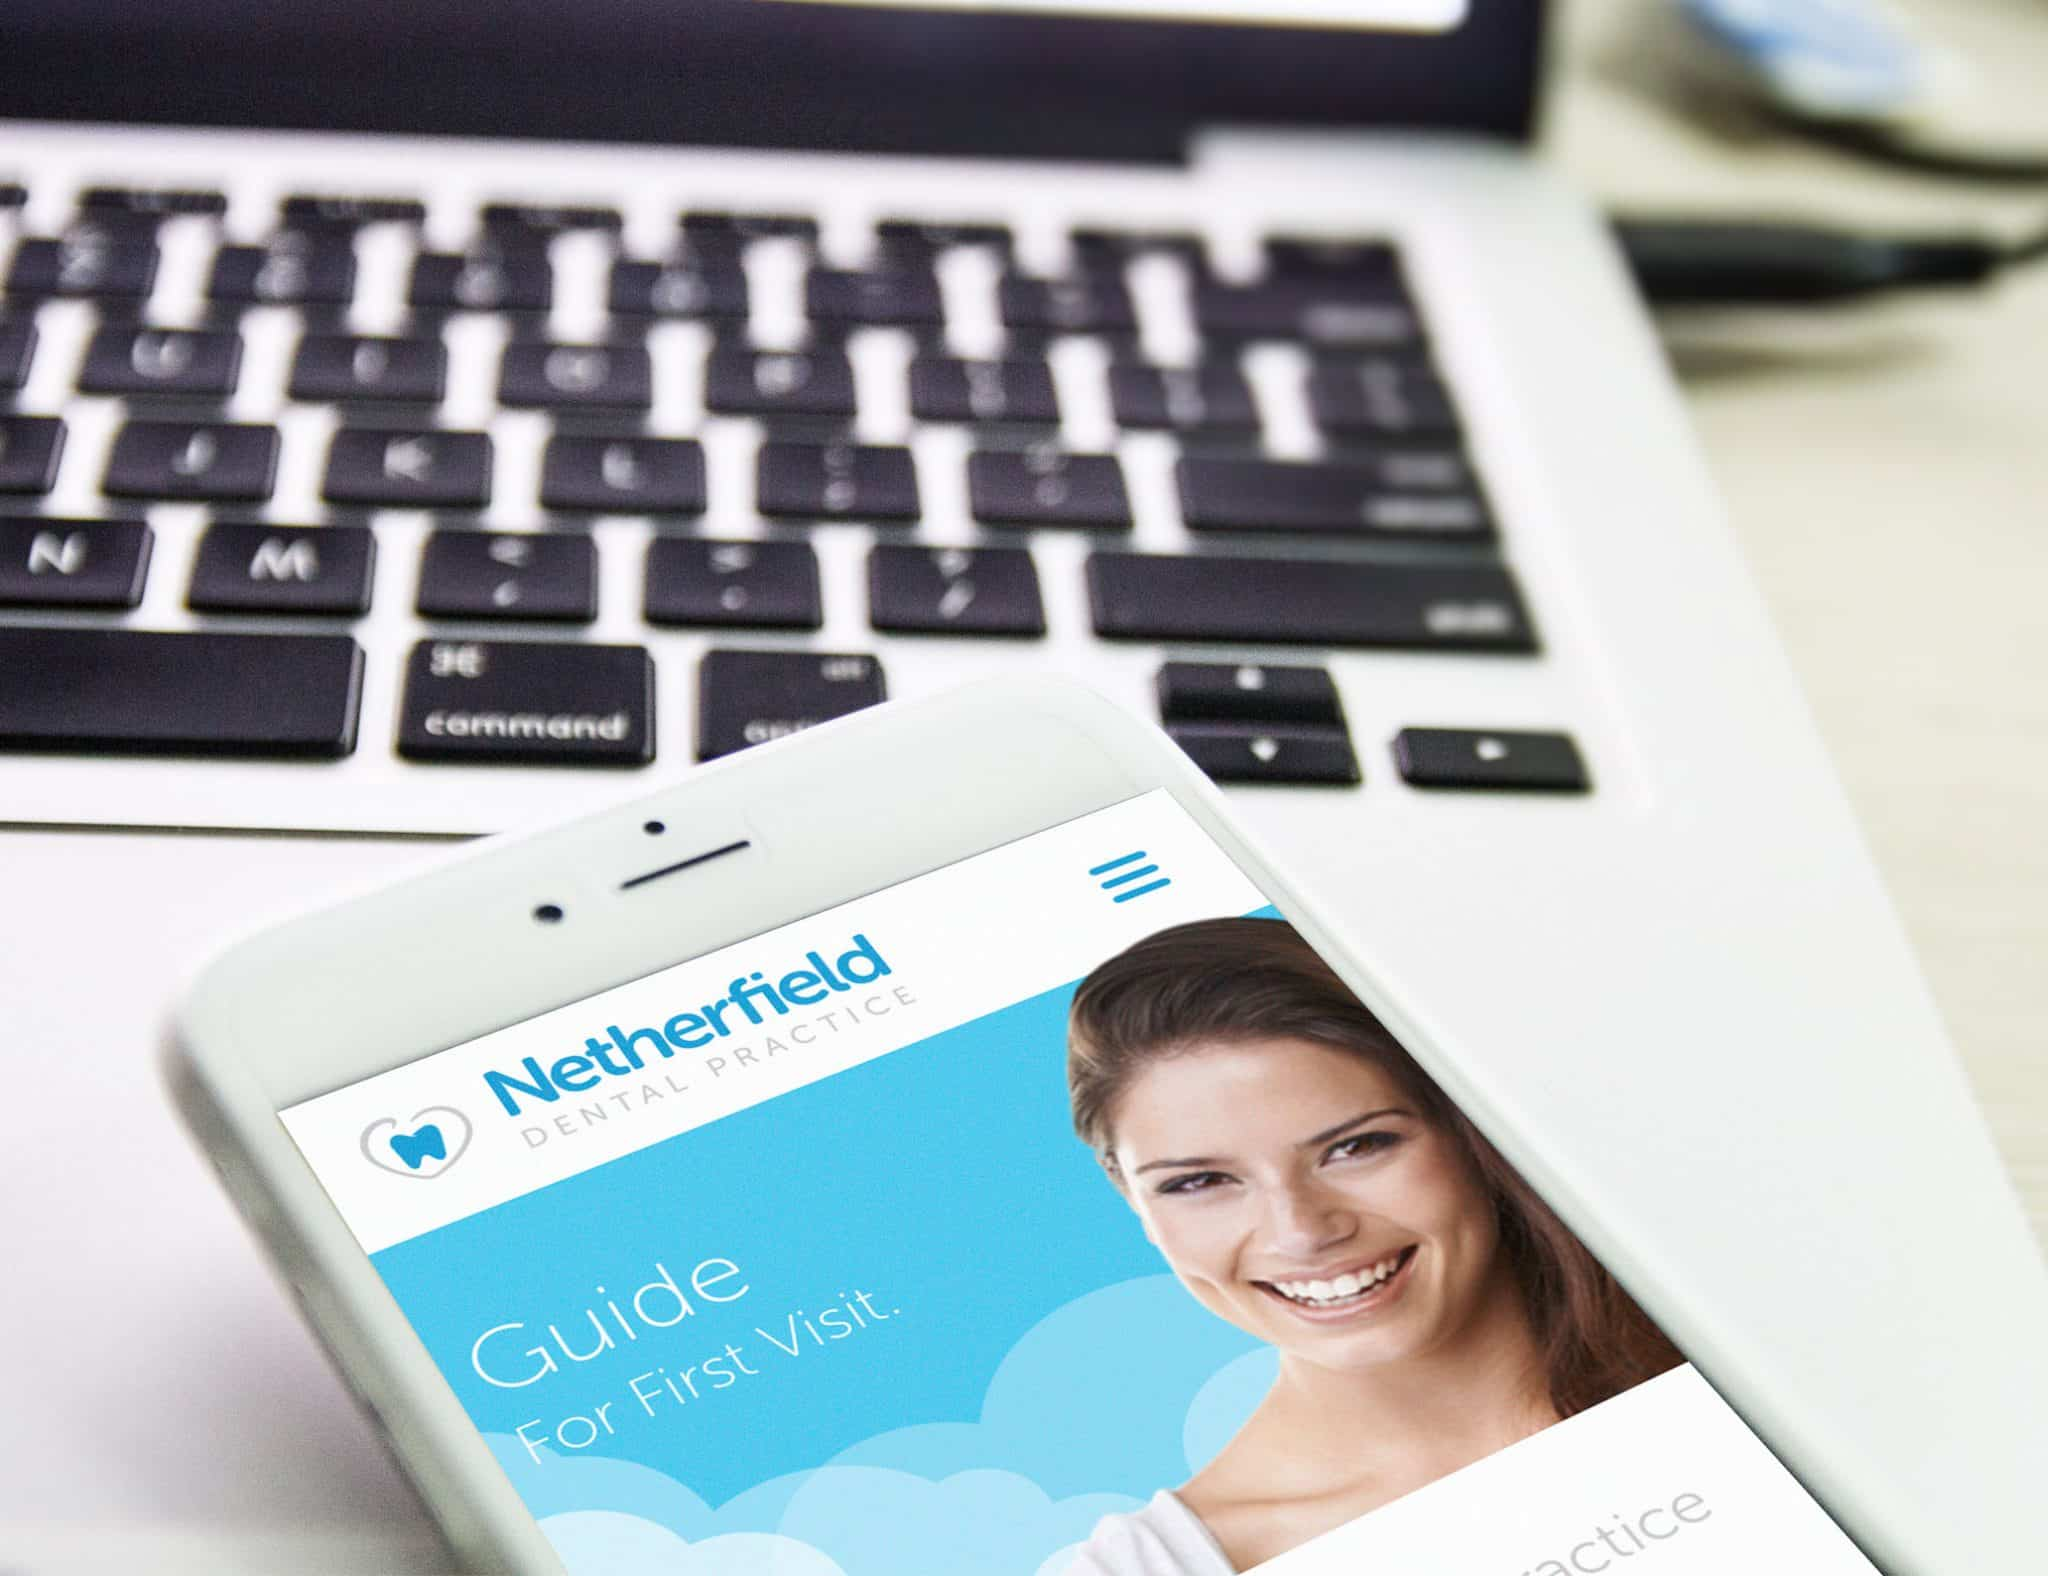 netherfield mobile site design